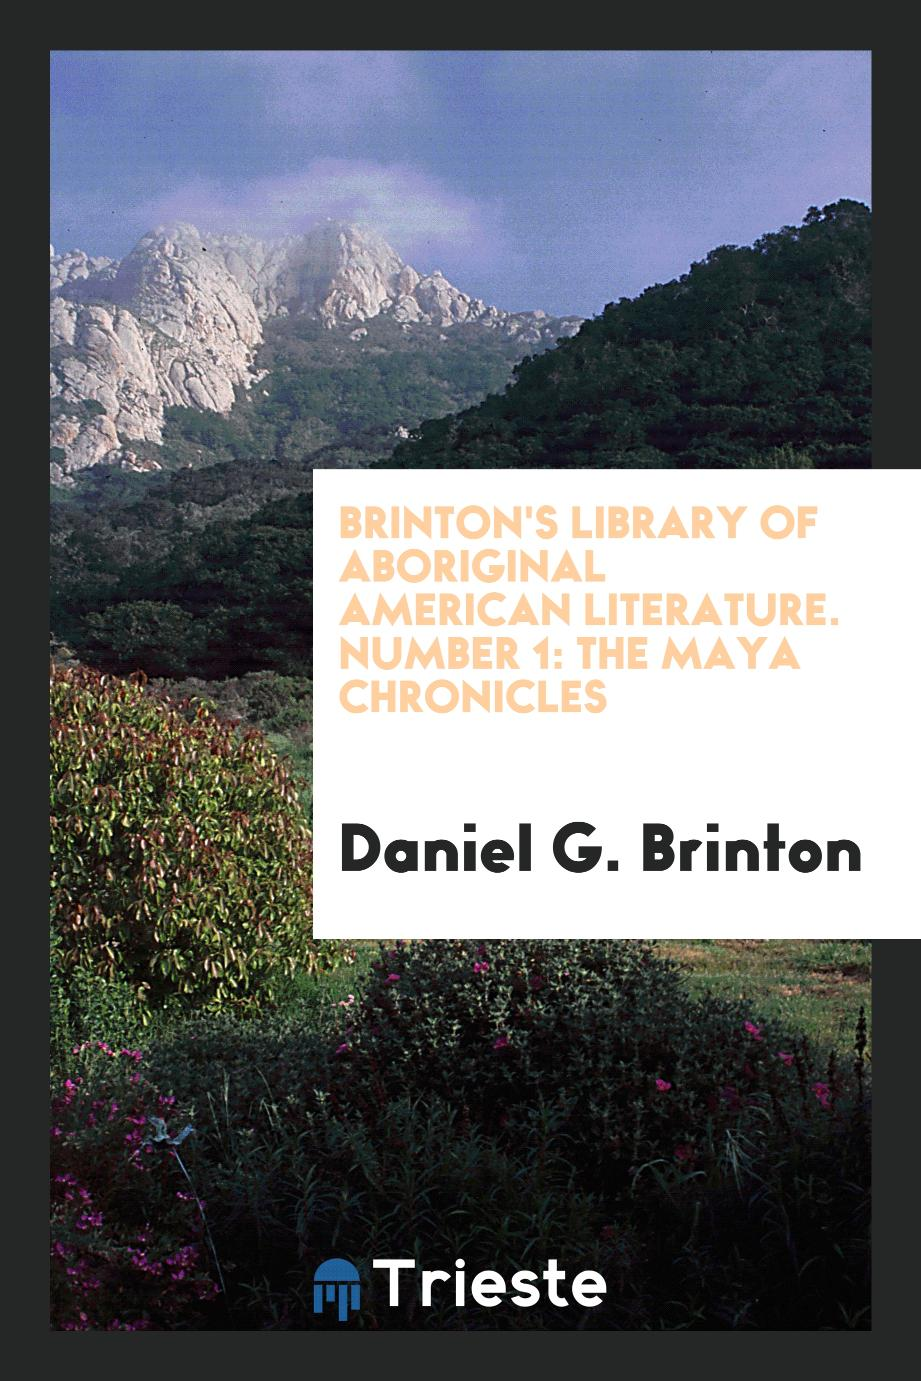 Brinton's Library of Aboriginal American Literature. Number 1: The Maya Chronicles